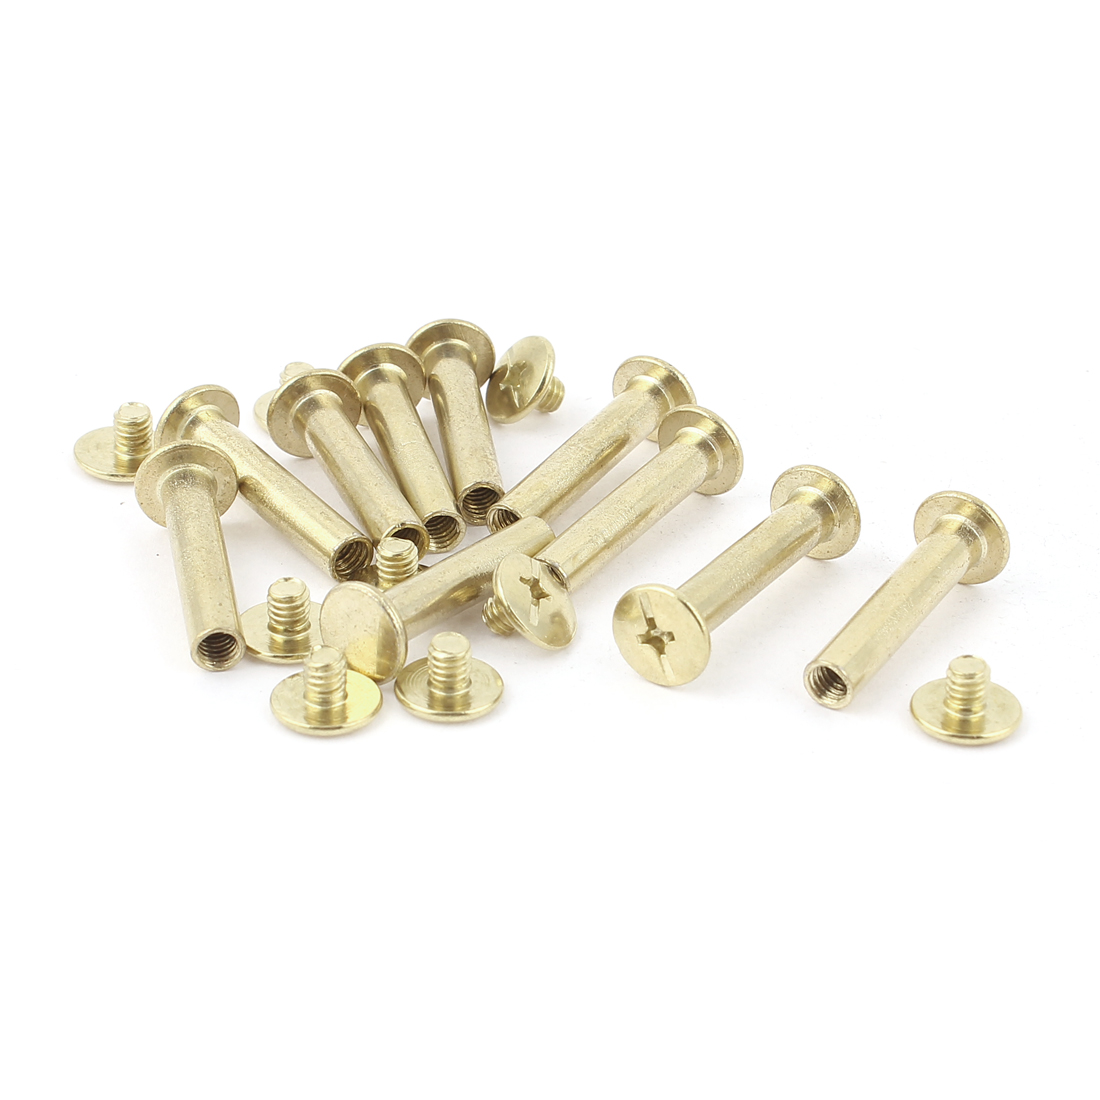 10pcs 5mm x 25mm Brass Plated Binding Chicago Screw Post for Album Scrapbook